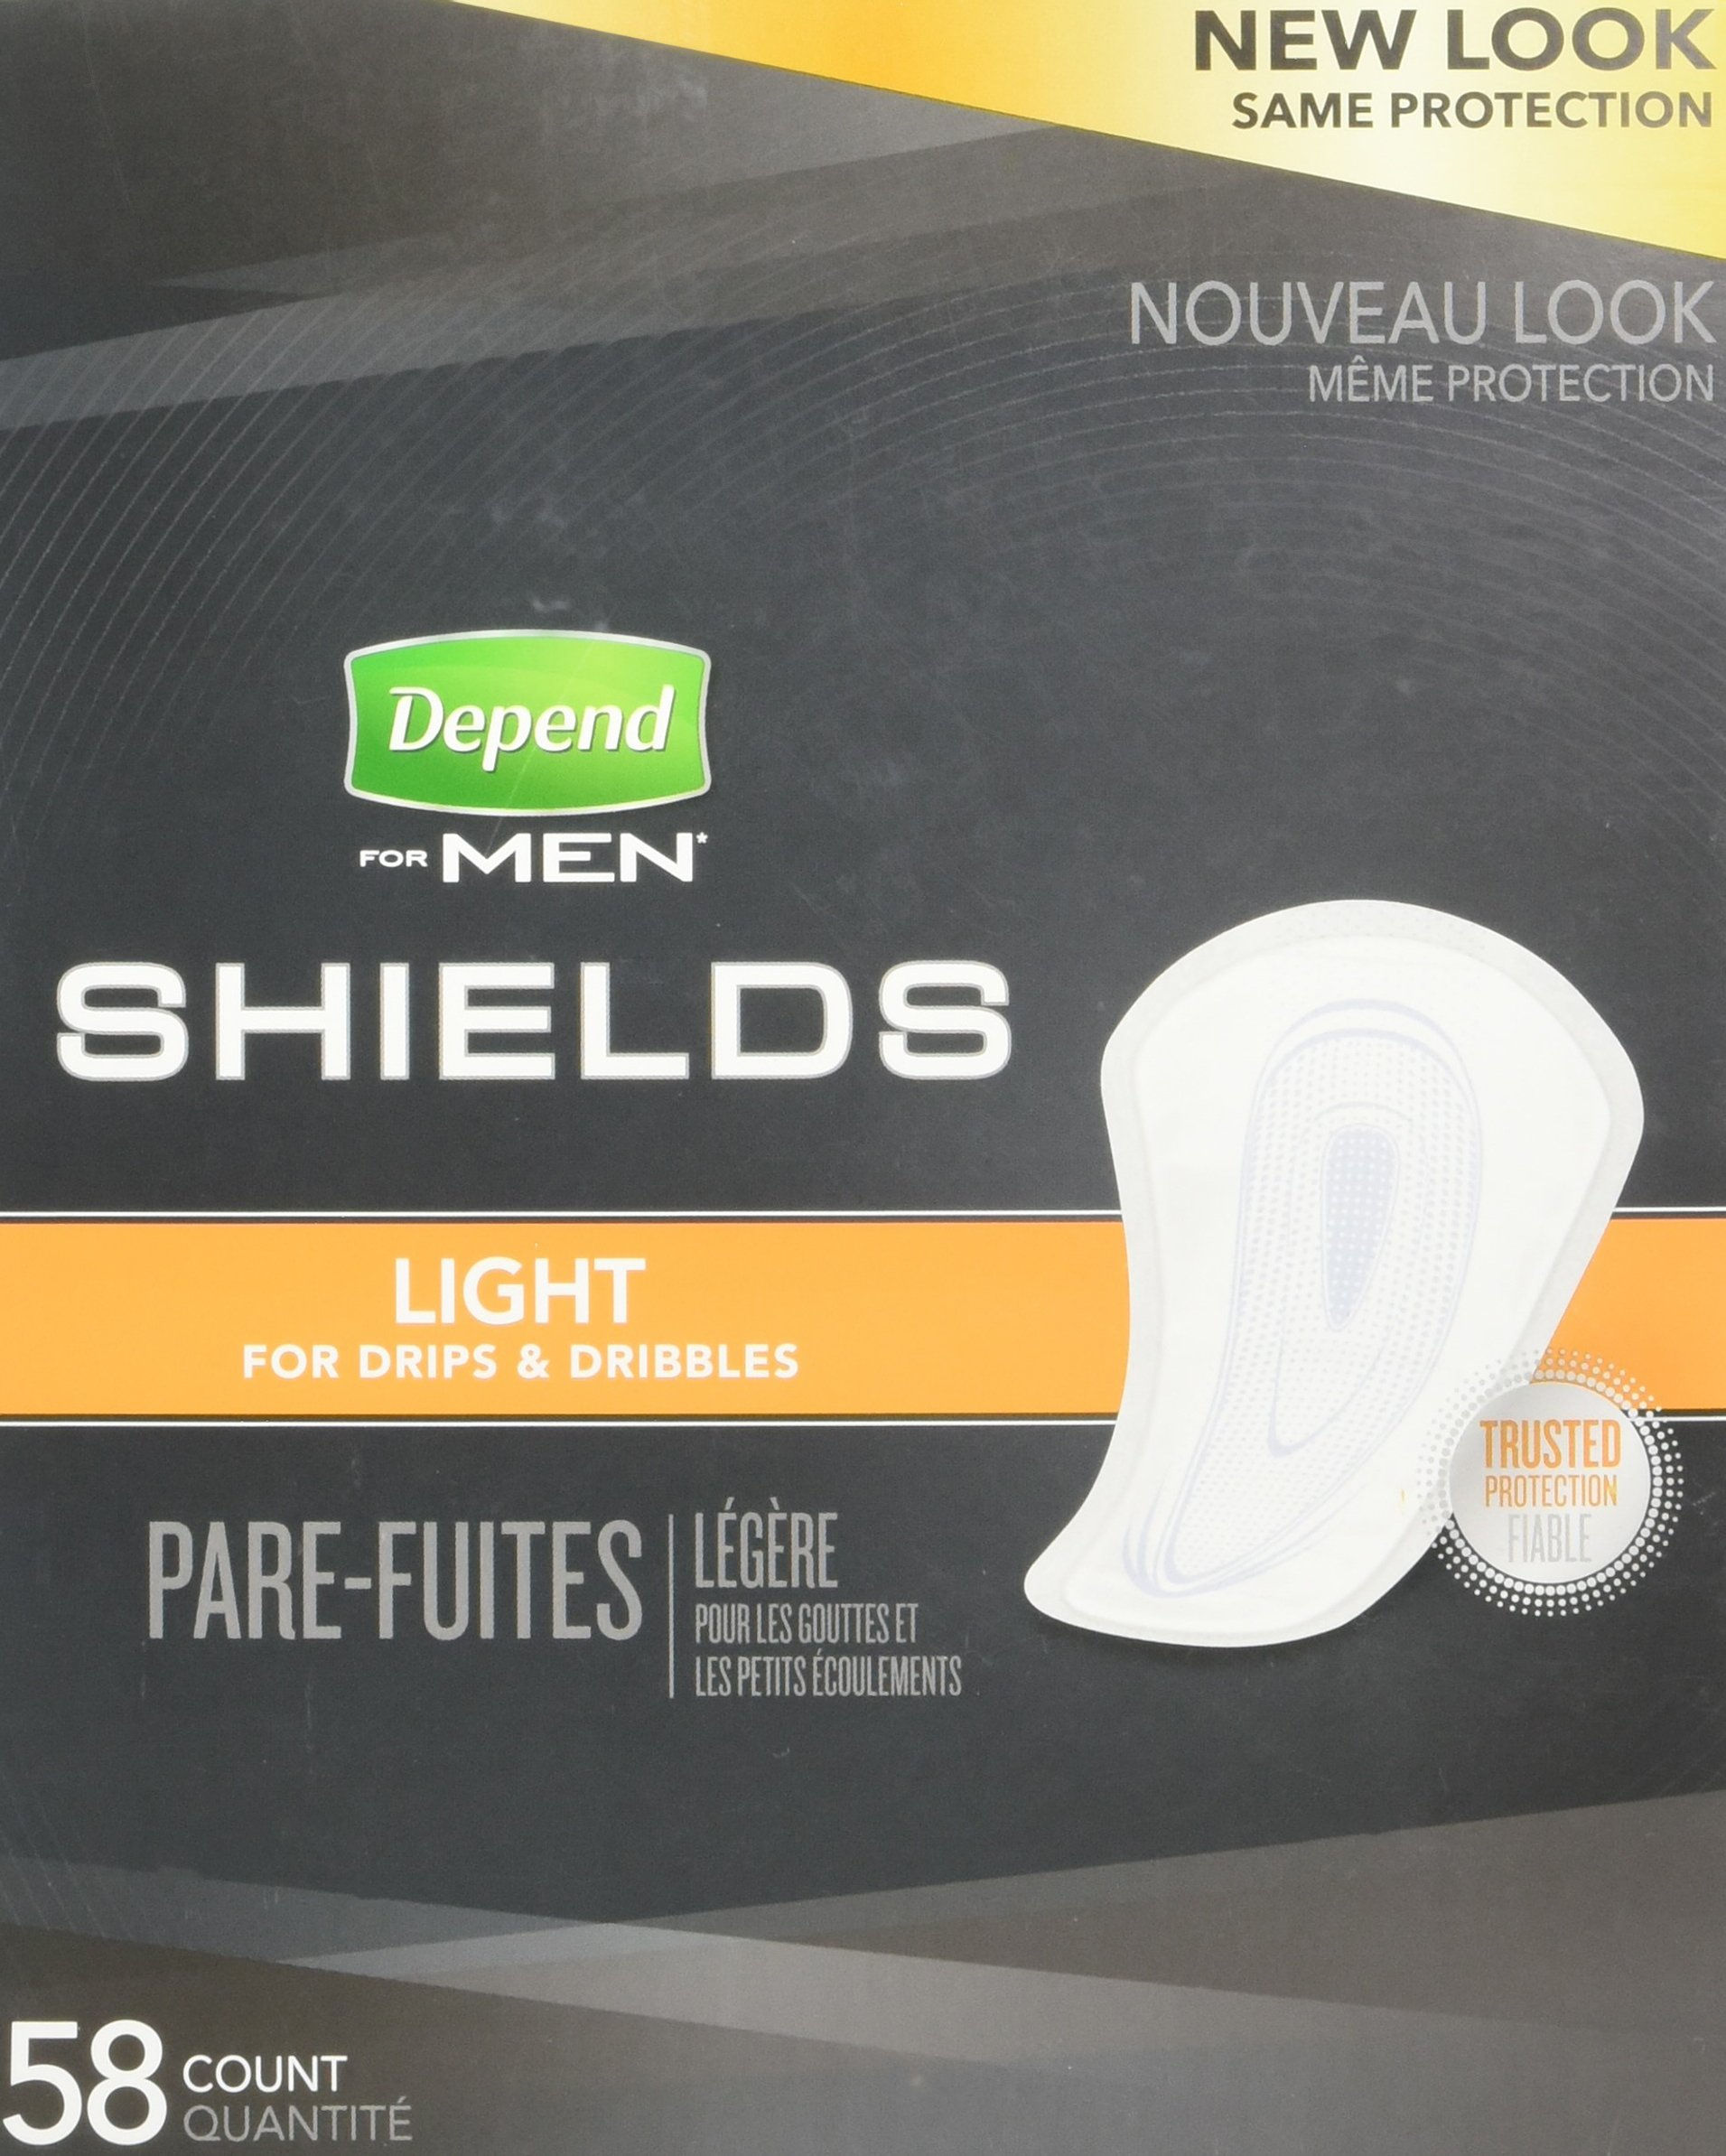 Depend Shields for Men, Case/174 (pack of 3) (58 count)